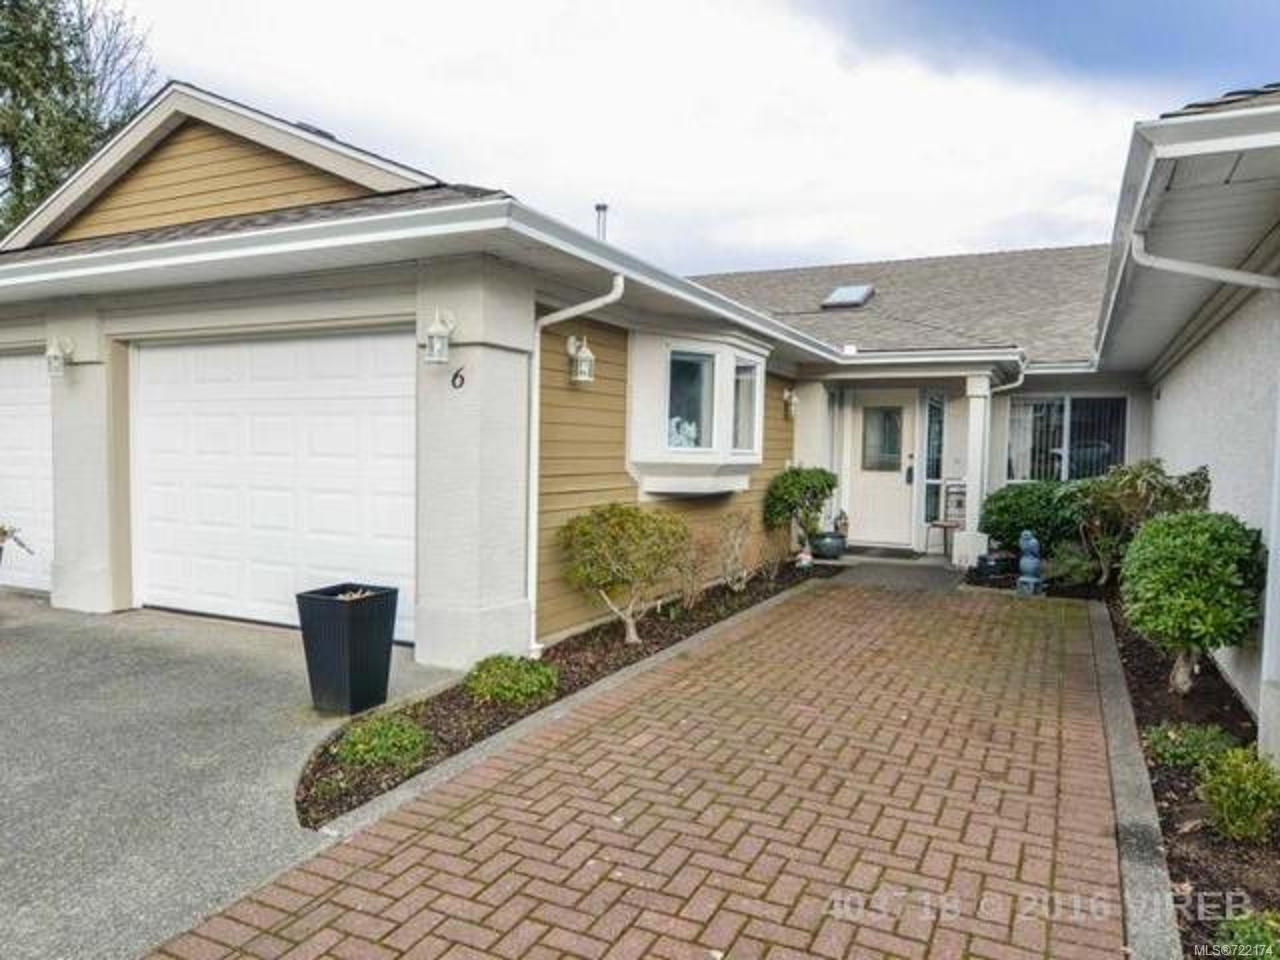 Main Photo: 6 650 Yorkshire Dr in CAMPBELL RIVER: CR Willow Point Row/Townhouse for sale (Campbell River)  : MLS®# 722174